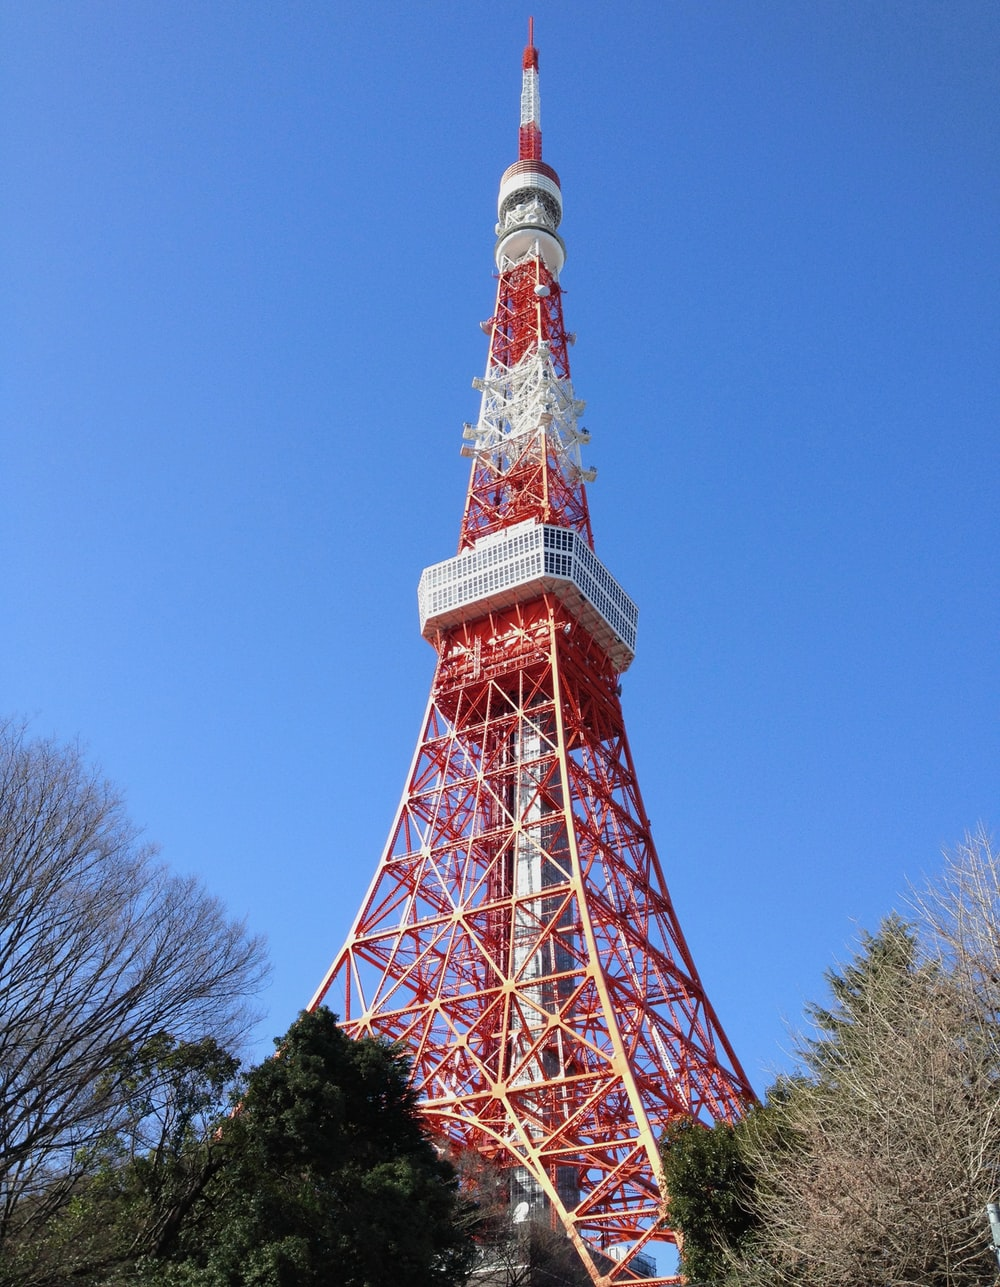 low angle photo of red and white tower